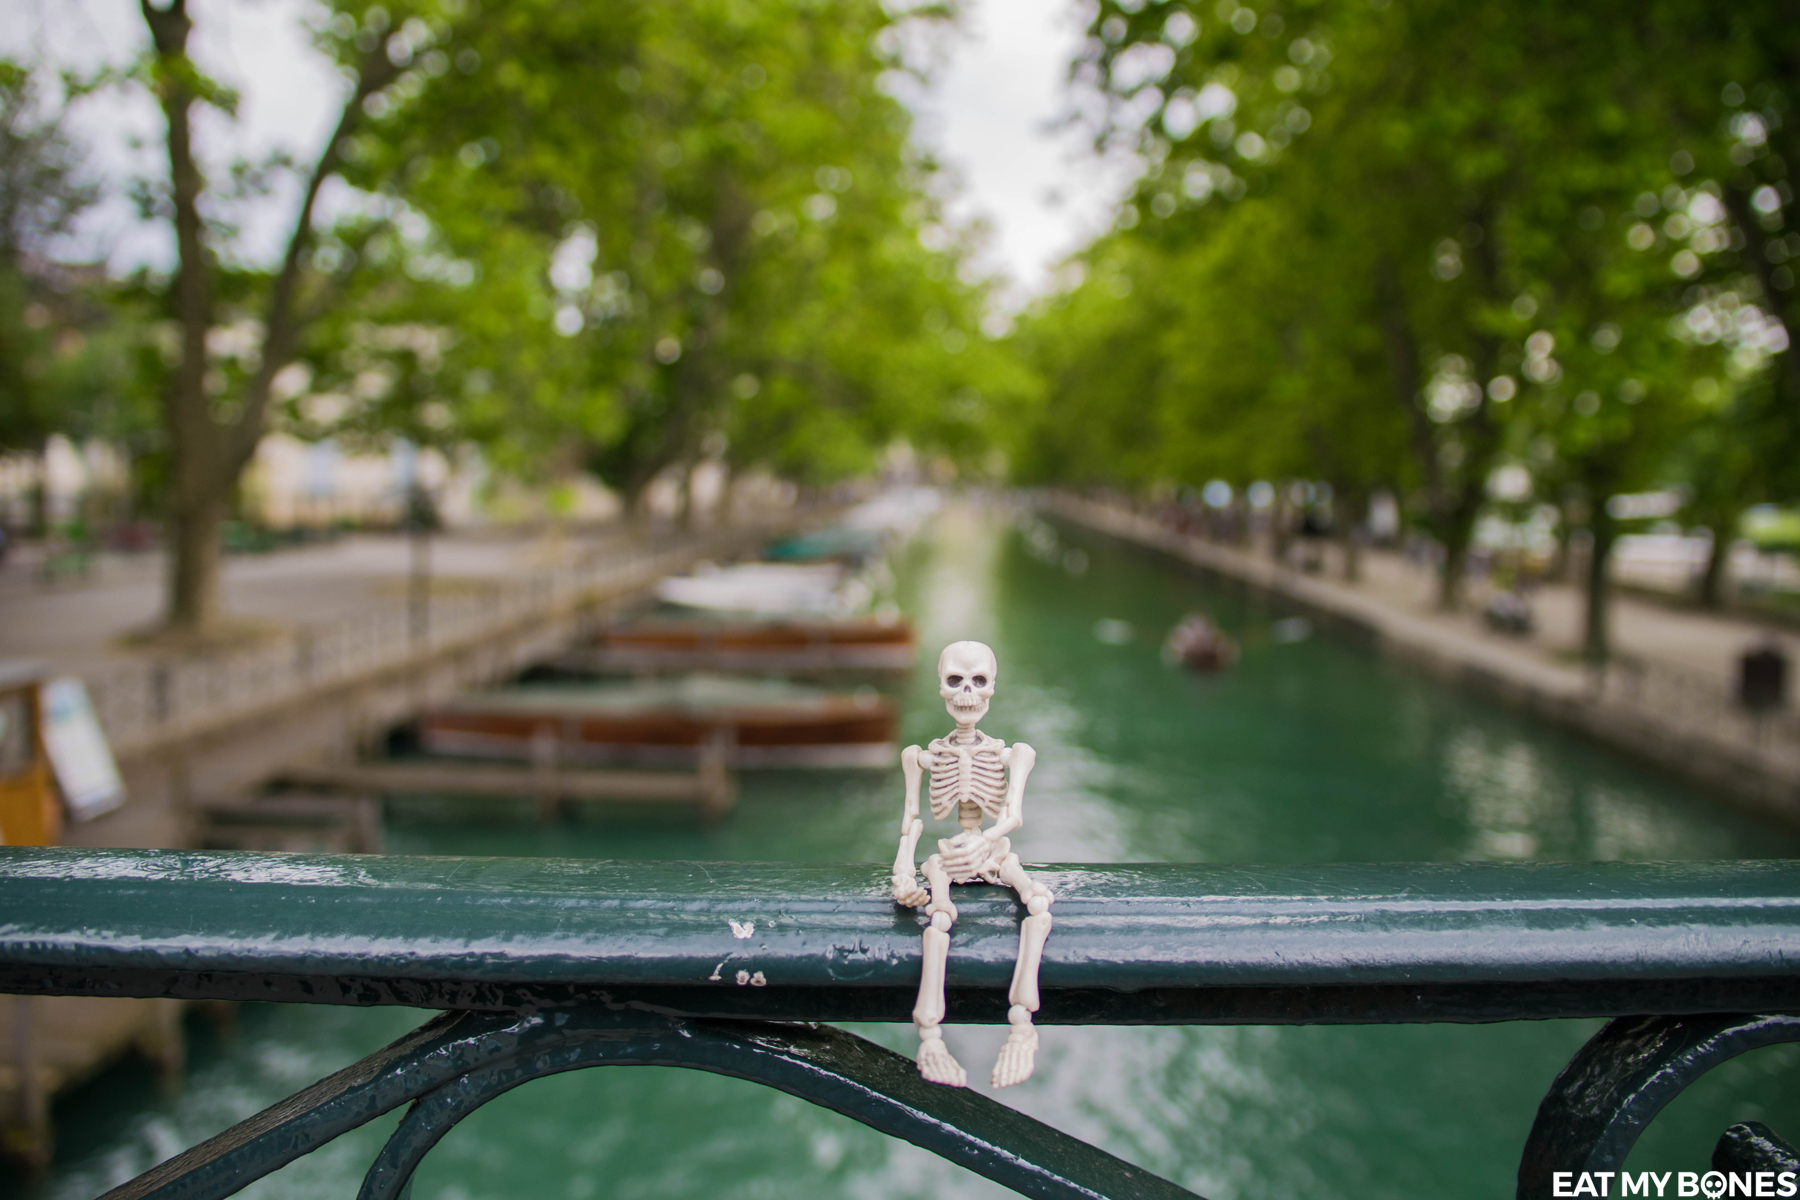 Annecy - Pose Skeleton - Toy photography - Miniature - Eat my Bones